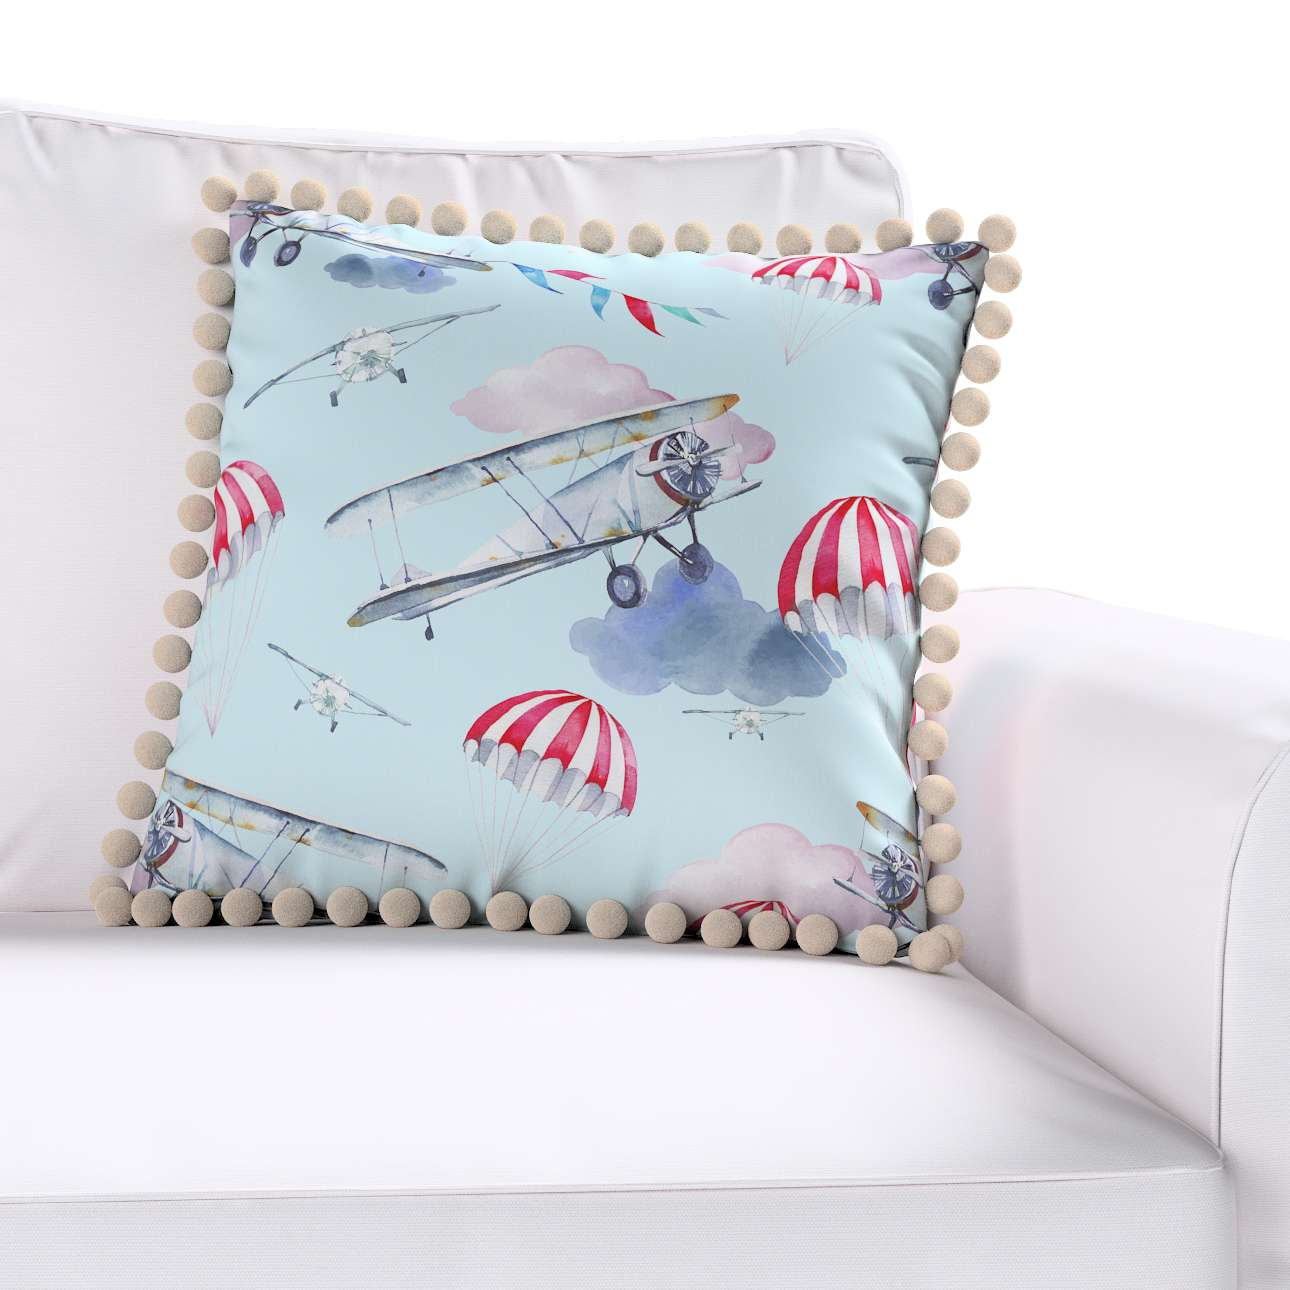 Daisy cushion covers with pom poms in collection Magic Collection, fabric: 500-10